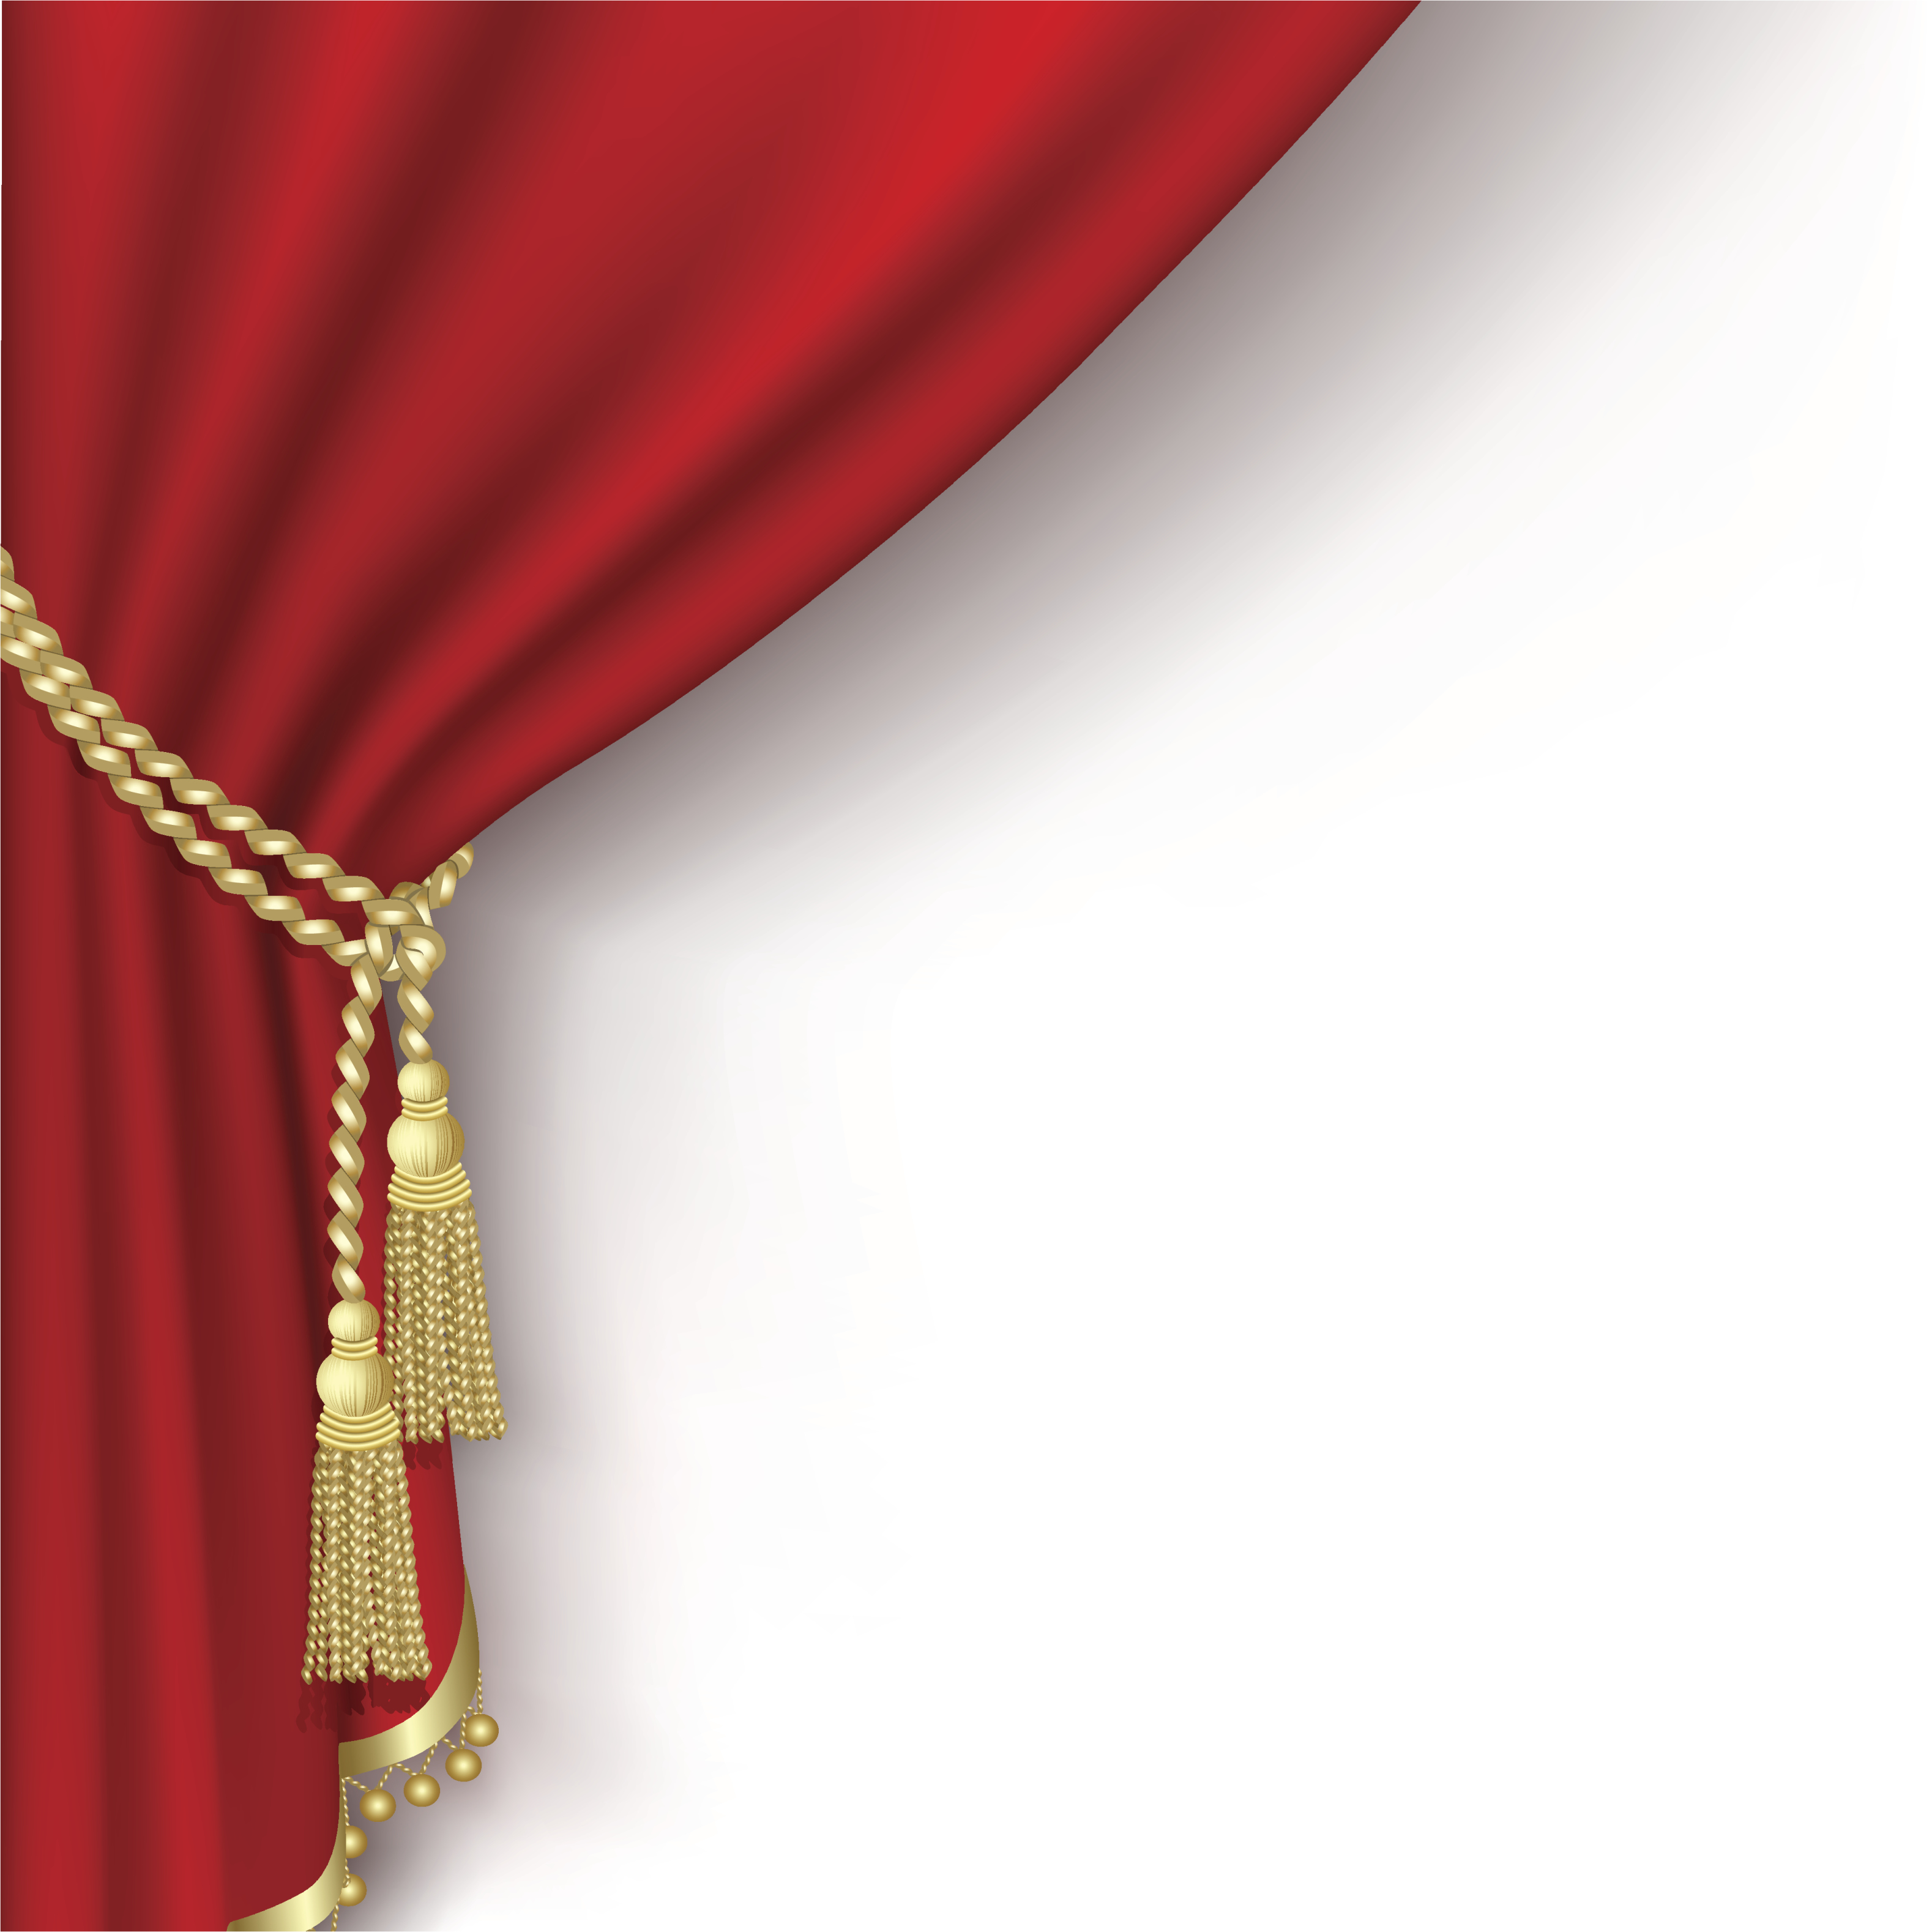 Theatre curtains png - Stage Curtains Png Theater Stage Curtains Red Movie Theater Curtains Images Femalecelebrity